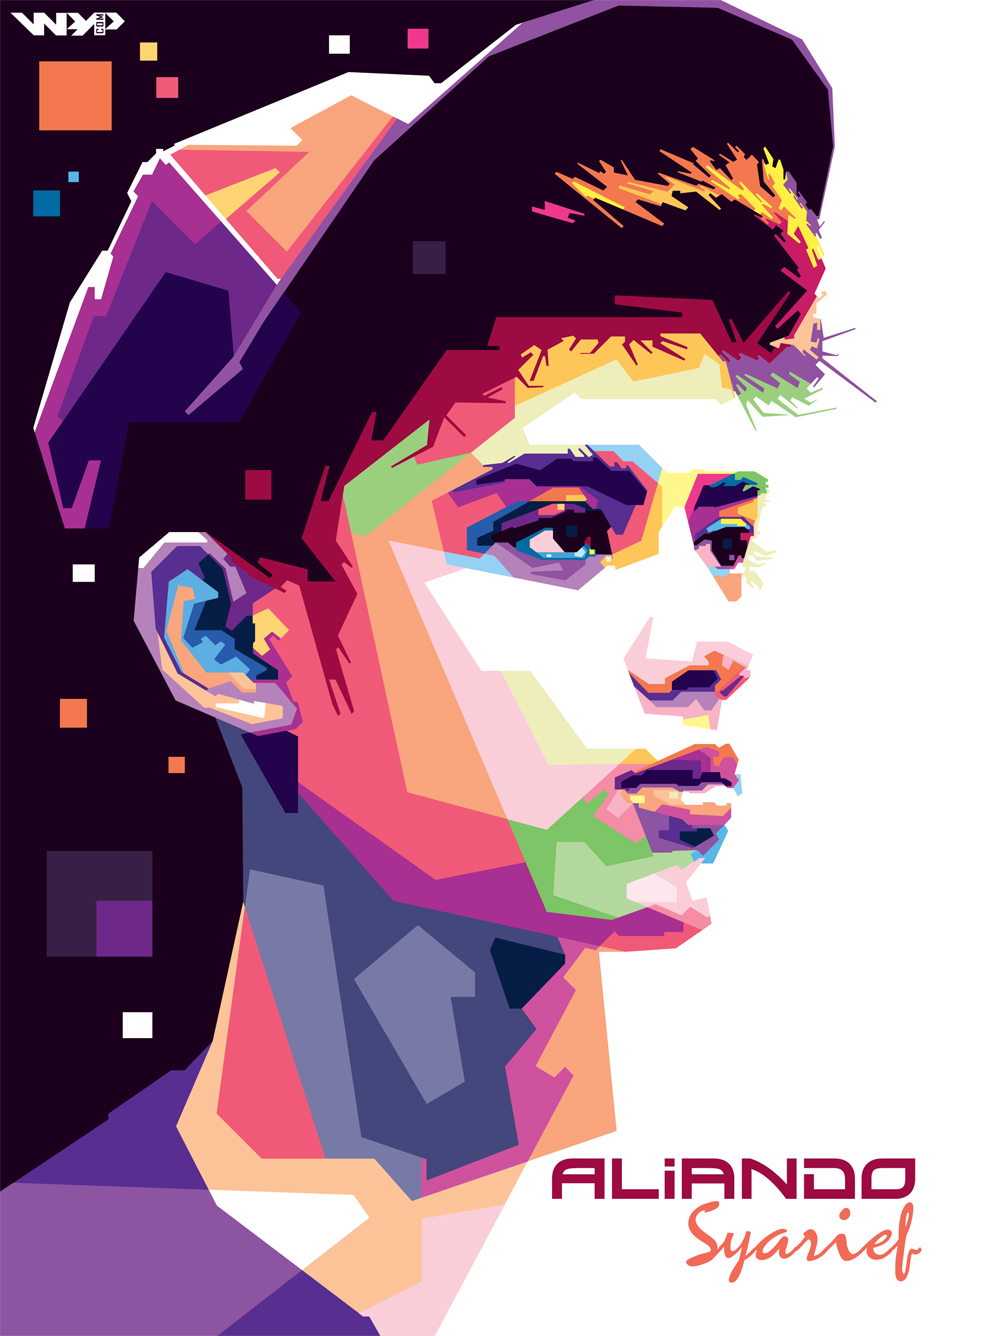 Aliando Syarief in wpap by NealWDart on DeviantArt